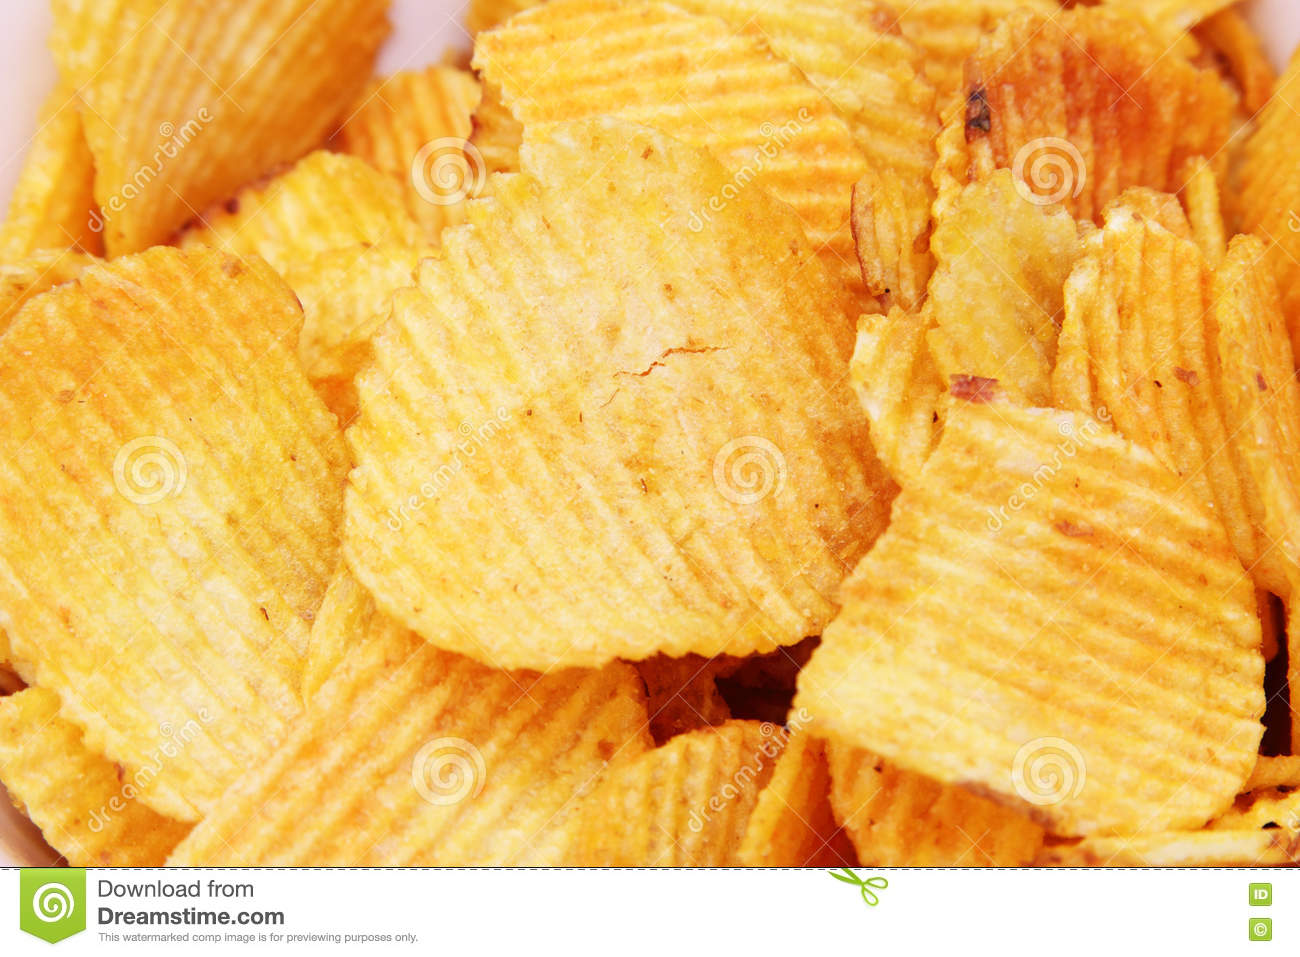 Covered Crunchy Potato Chips